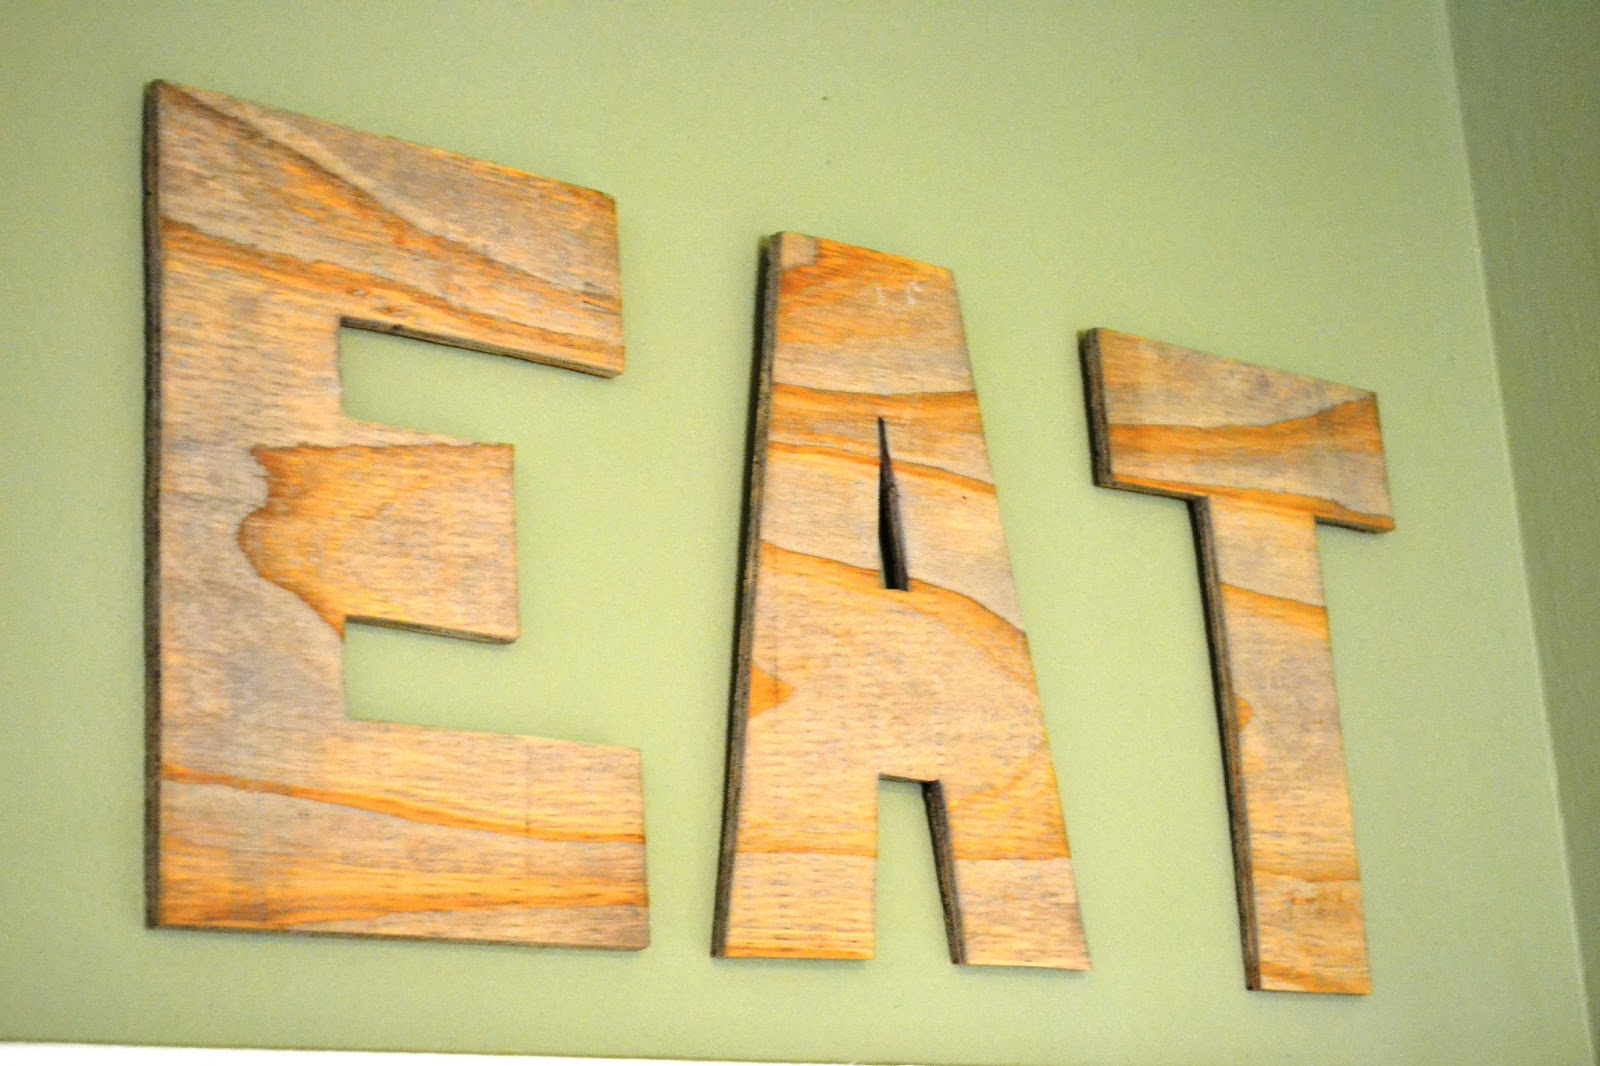 wooden signs for kitchen cabinet ideas small kitchens diy wood eat sign